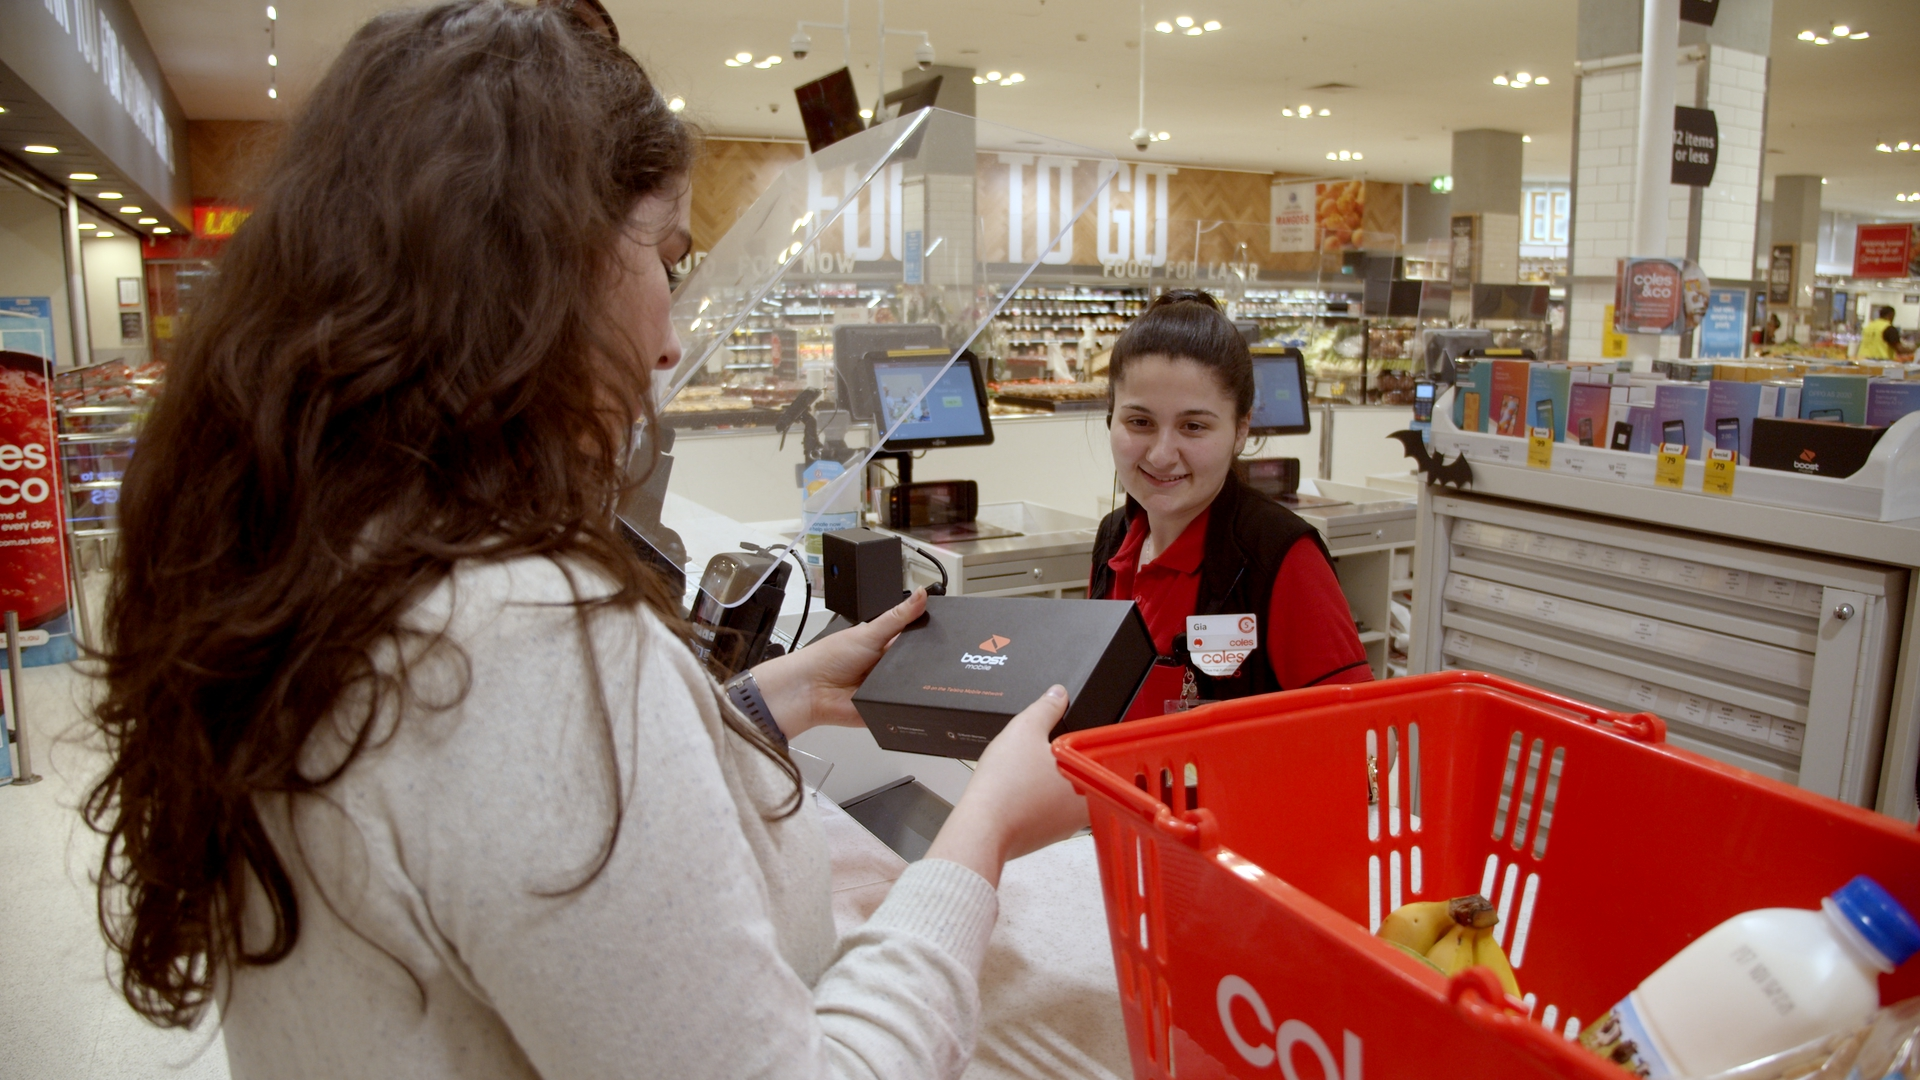 Coles to sell $359 refurbished iPhone 8 devices